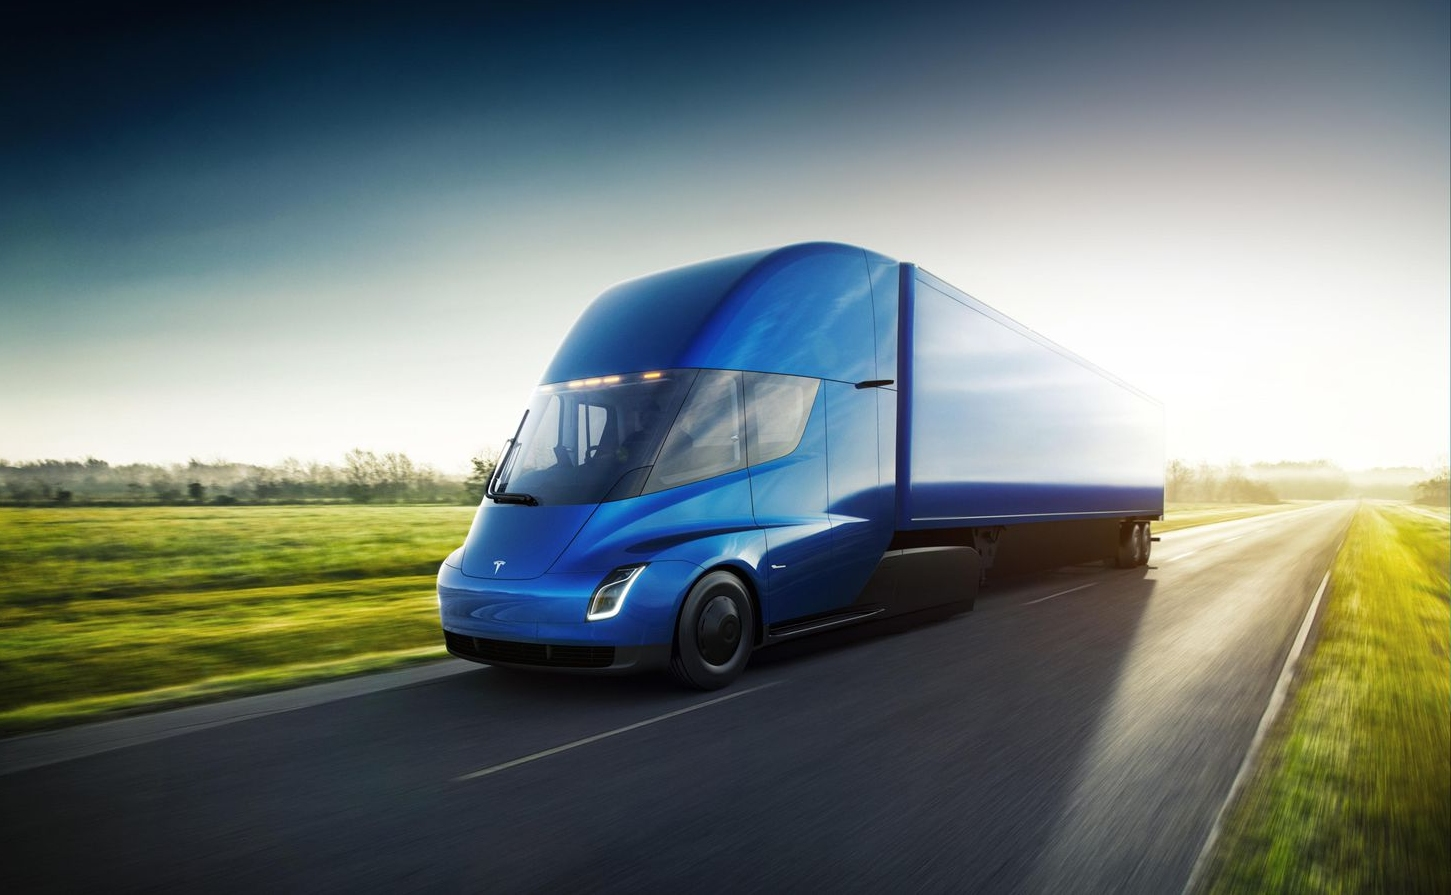 Tesla Semi goes on its first production cargo trip, transporting battery packs